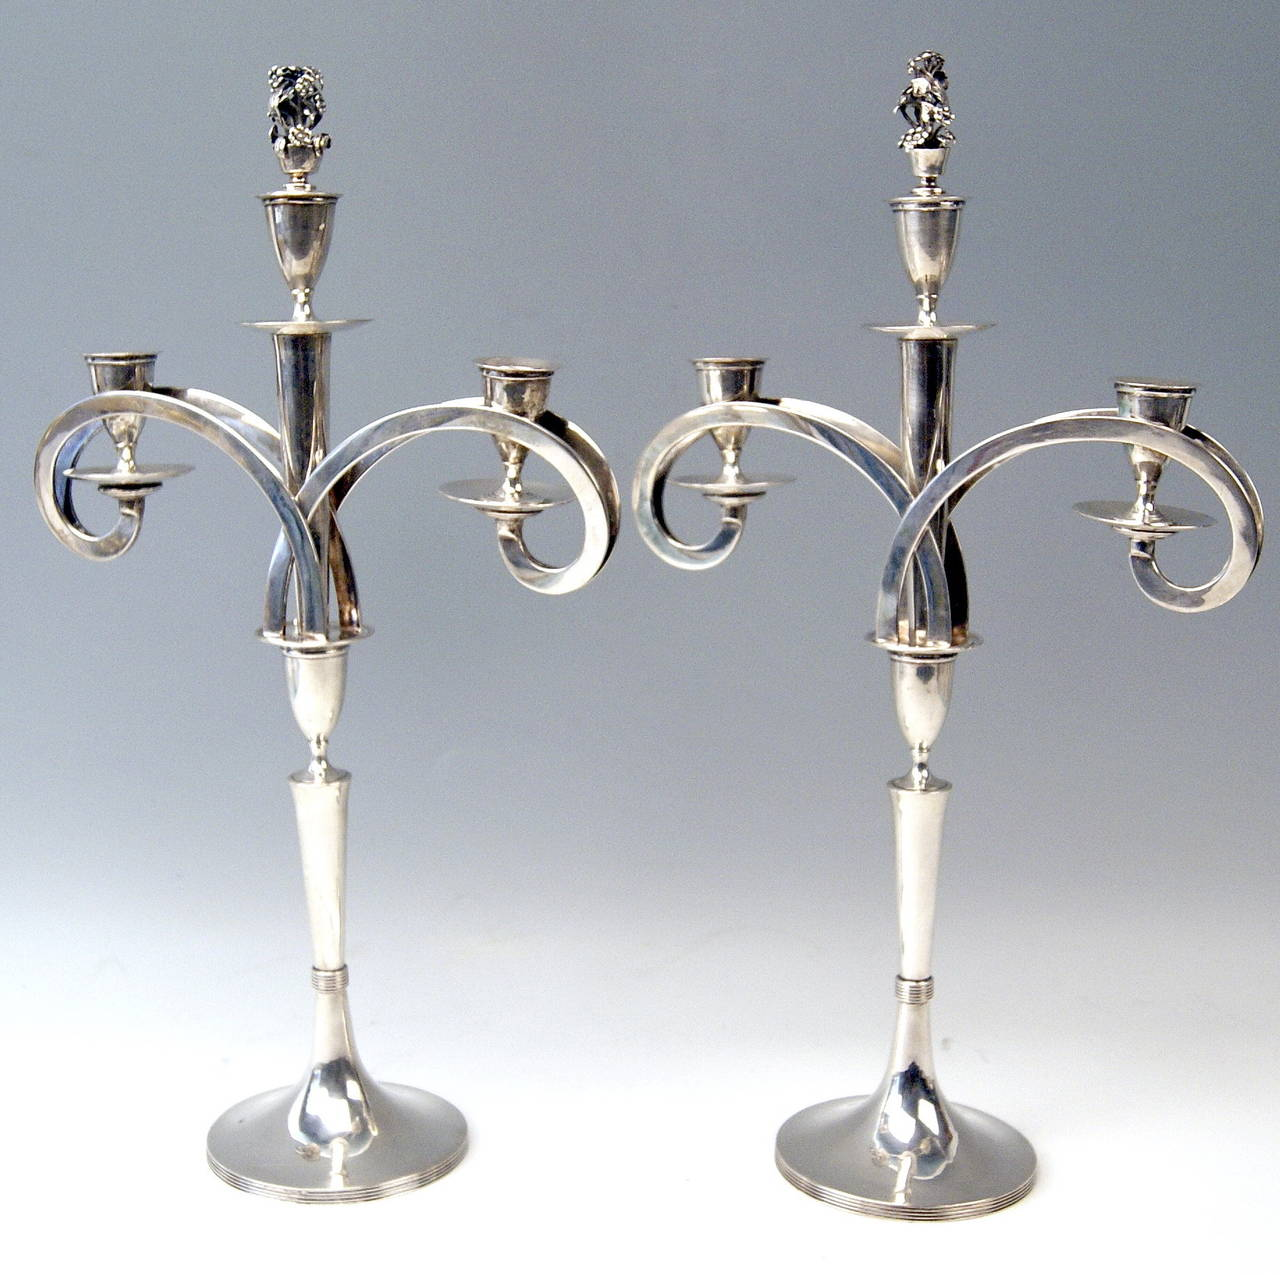 Silver 13 Lot Viennese Two Empire Candlesticks by Anton Koell Dated 1811 For Sale 1